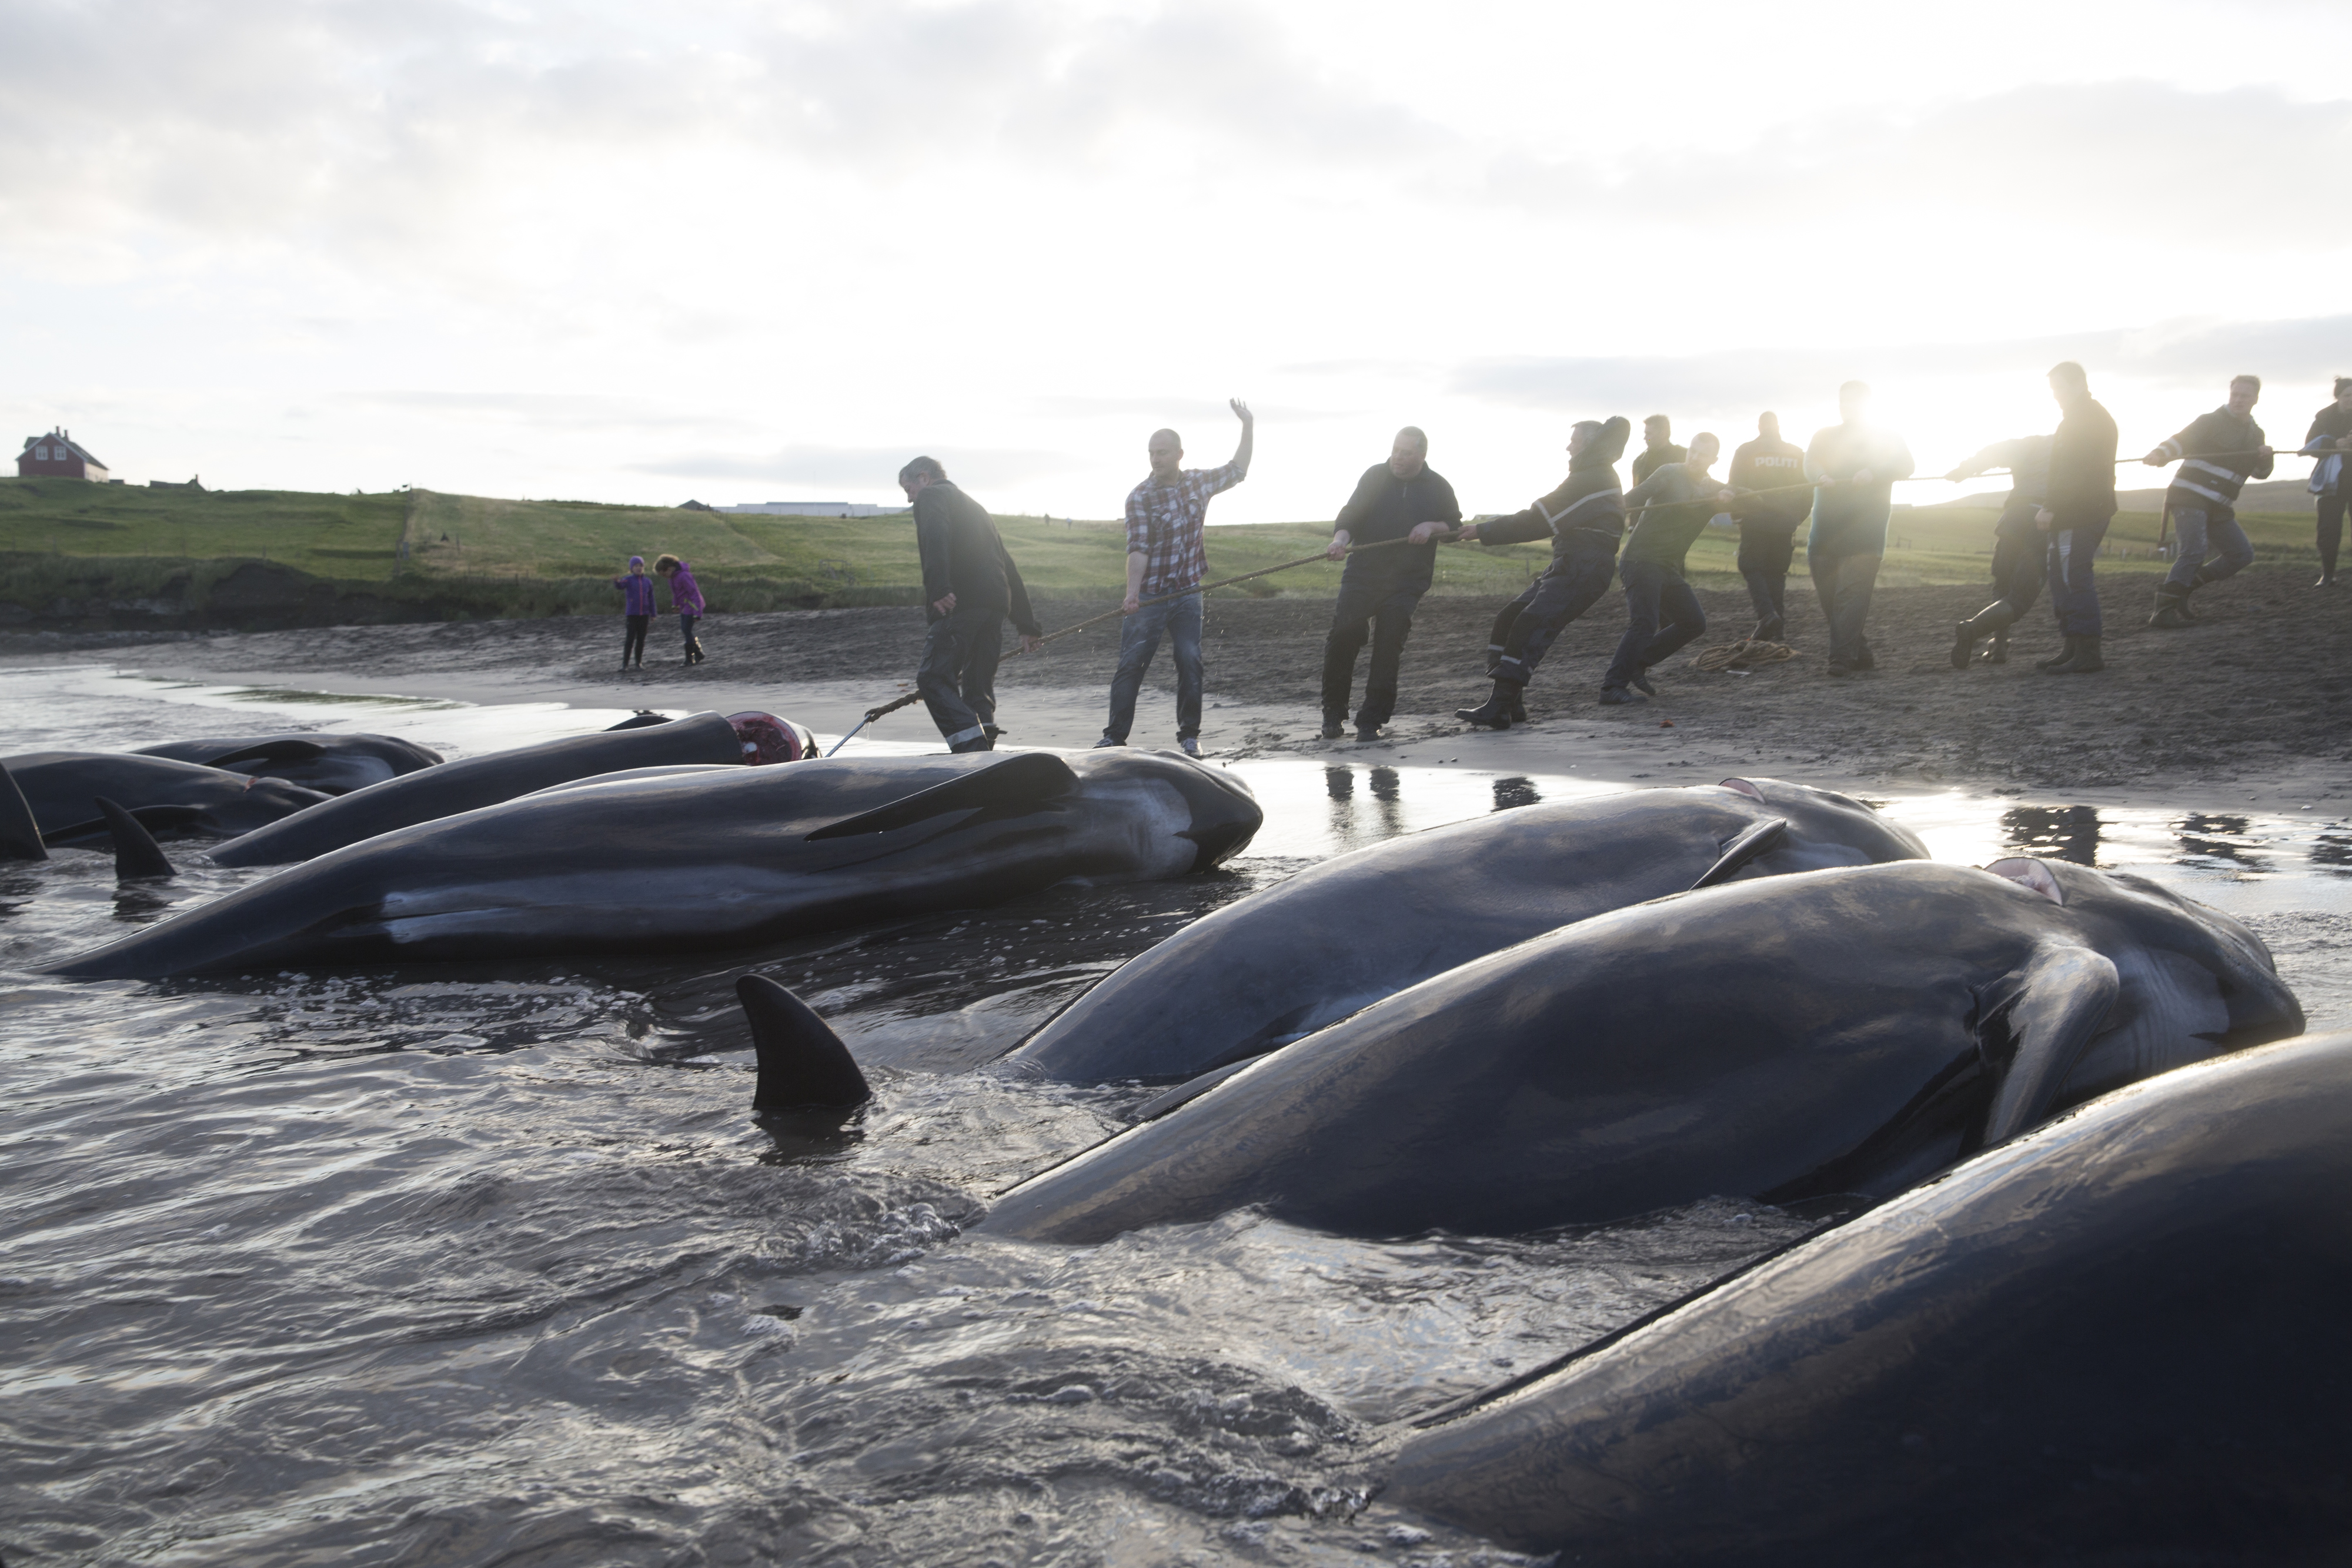 Men drag dead pilot whales onto the beach during a hunt in Sandur, Faroe Islands on Aug. 30, 2014. The tradition has endured for nearly 1,000 years. The grind usually occurs in the summer, but there is no set date, or even a set season. A grind can happen at any minute. When a pod is spotted, everyone drops what they're doing to participate in the hunt. The hunt has always been non-commercial, the meat is shared among the community. Photo: Ed Ou. Reportage: Getty Images